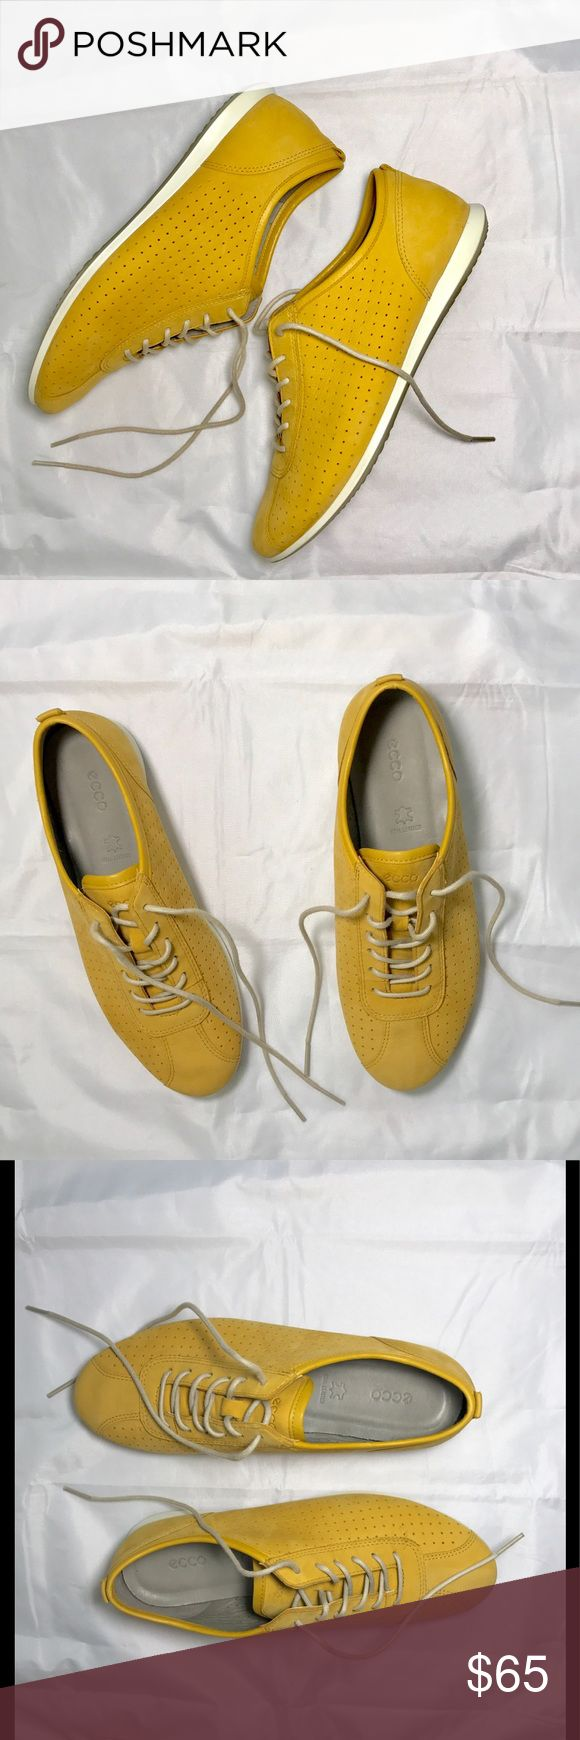 Ecco Soft Touch Sneaker Anyone who knows Ecco knows it's synonyms with comfort. Touch Sneaker in Saffron. Nubuck suede. Wore once. Almost new condition. Very pristine. EUC! In original box. Size 6 but fits 6.5 because that's what I wear in Eccos. Ecco Shoes Sneakers